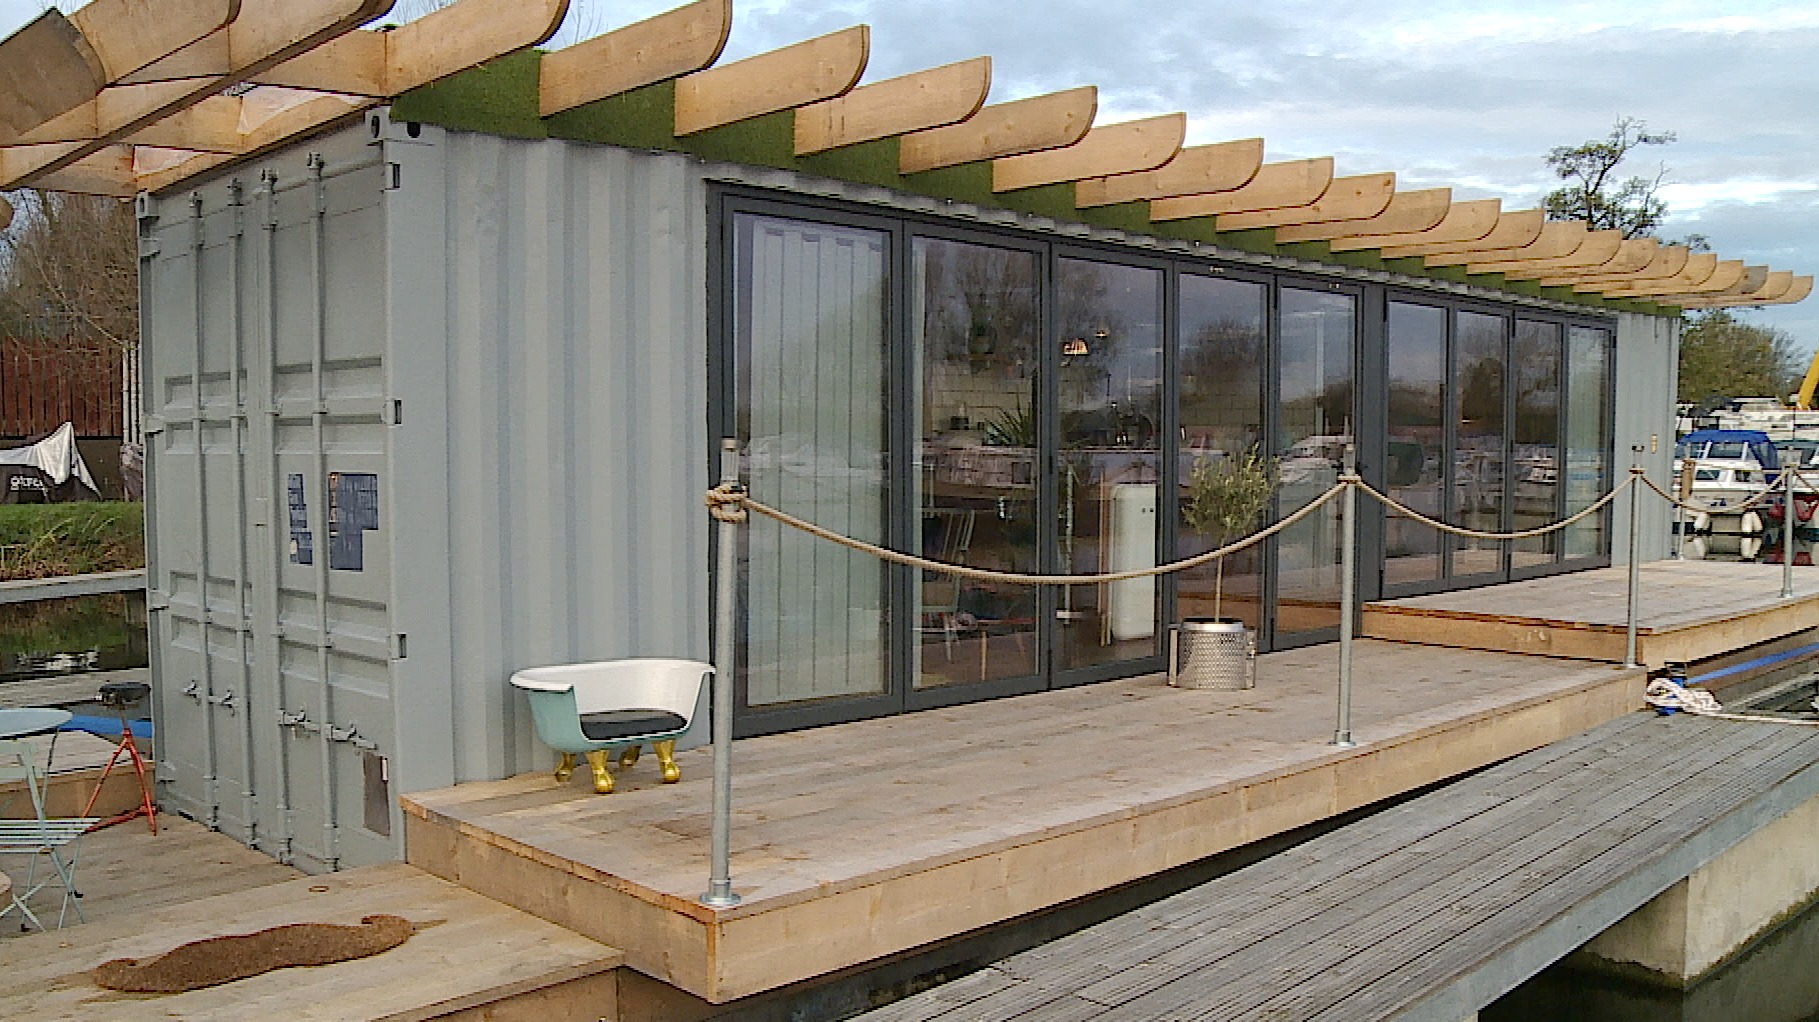 Floating Shipping Container Makes Ideal Low Cost Home Anglia Itv News - Containers For Storage